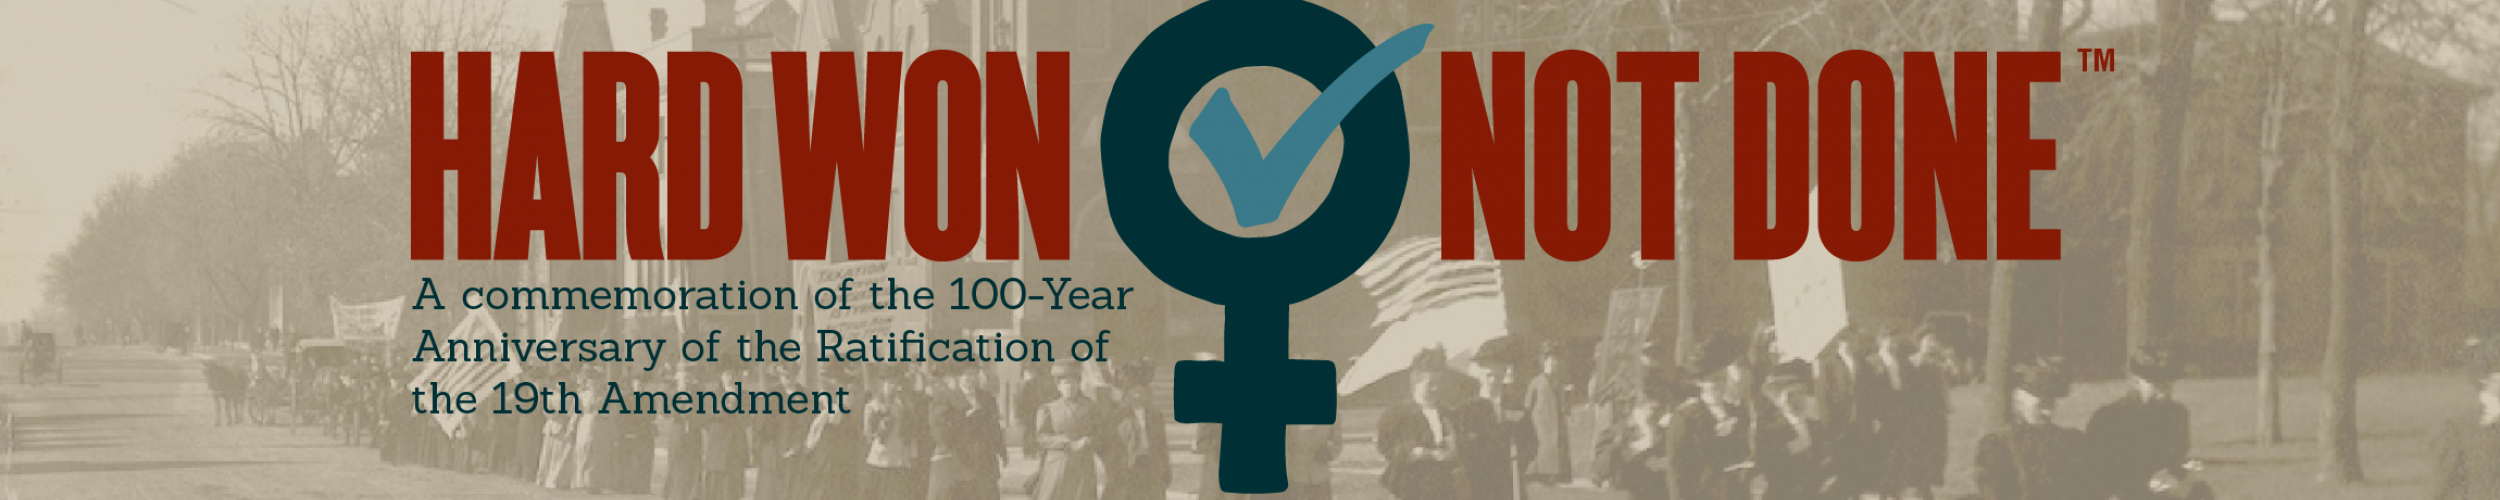 Hard Won. Not Done. A commemoration of the 100-Year Anniversary of the Ratification of the 19th Amendment